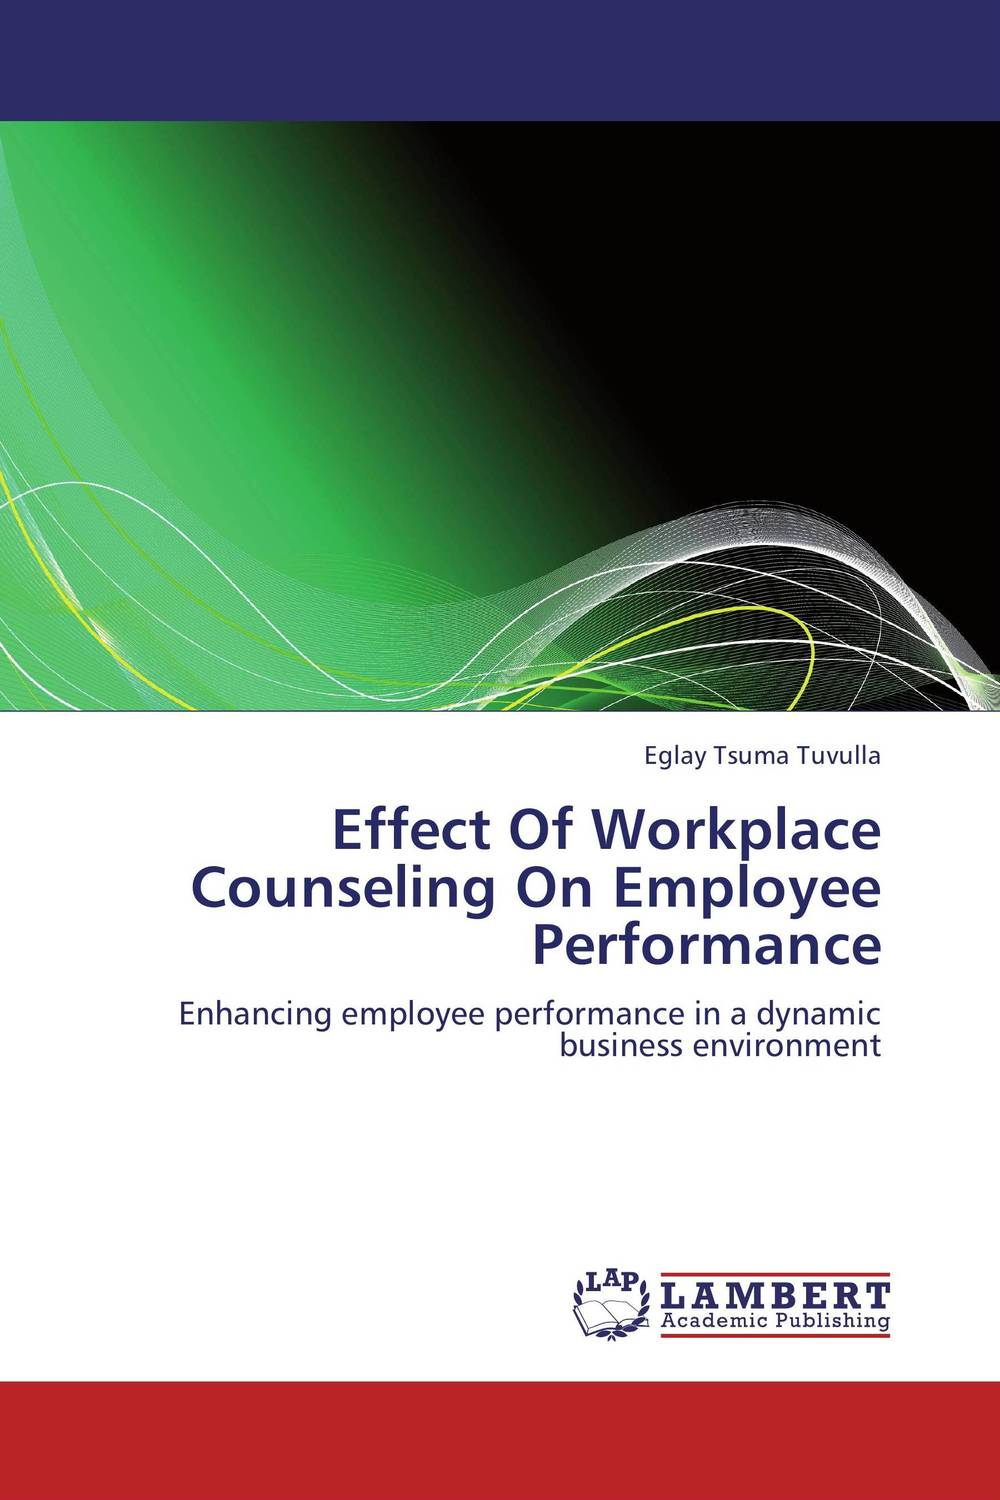 Effect Of Workplace Counseling On Employee Performance stephen denning the leader s guide to radical management reinventing the workplace for the 21st century